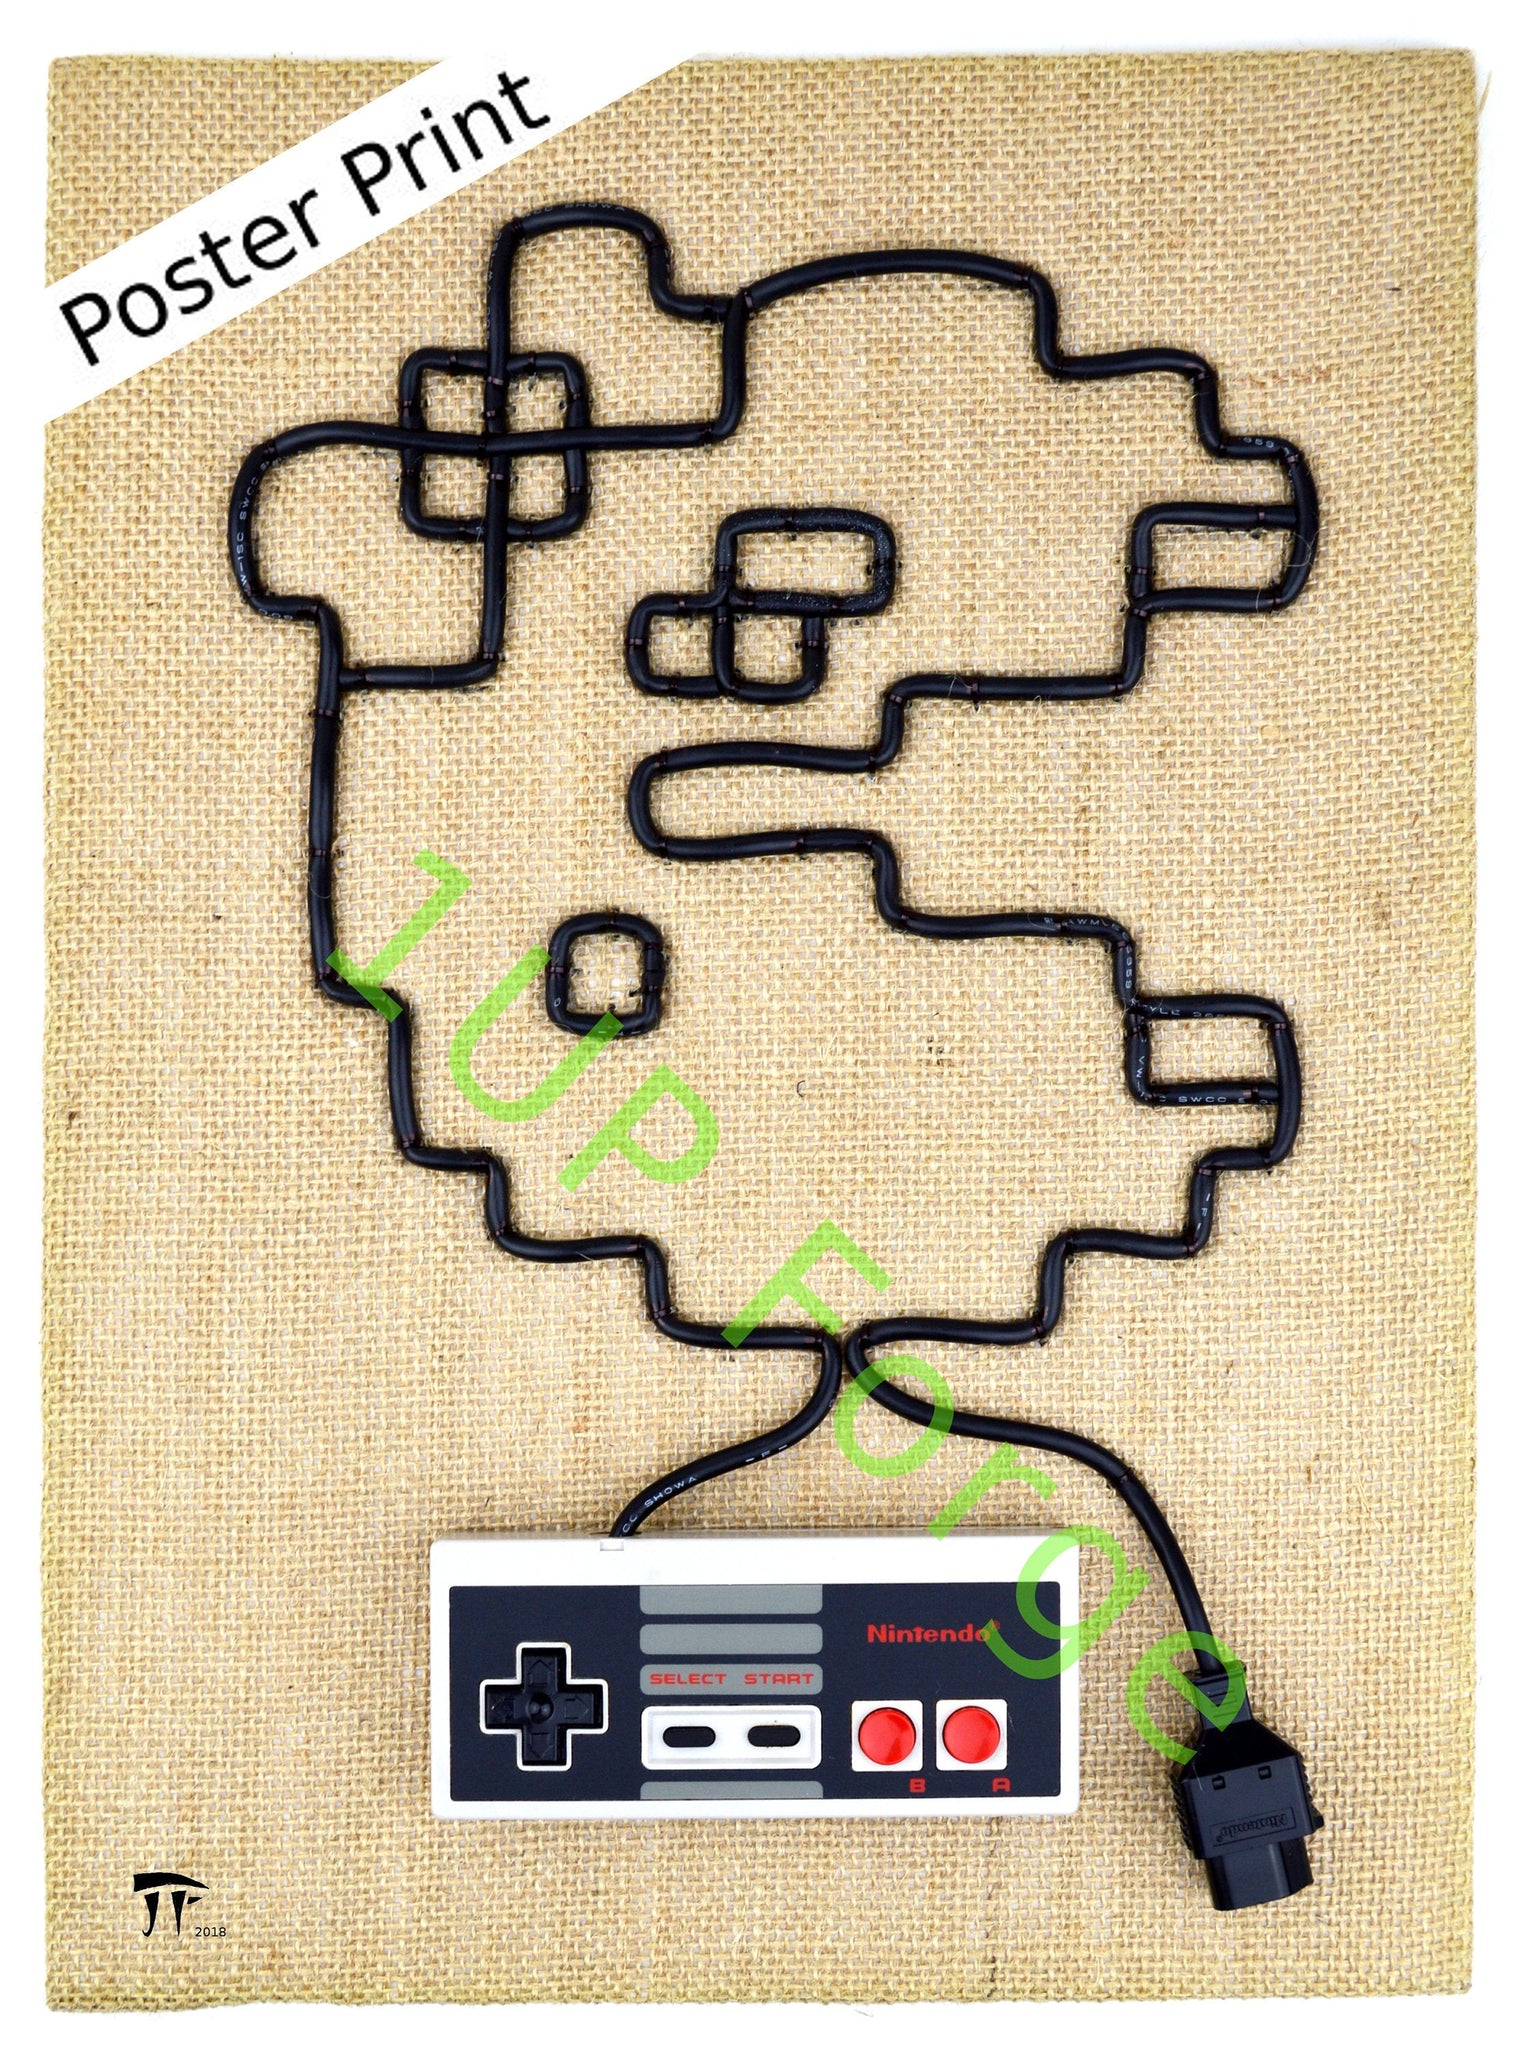 NES Nintendo Poster Print - Ms Pac Man - Video Game Art